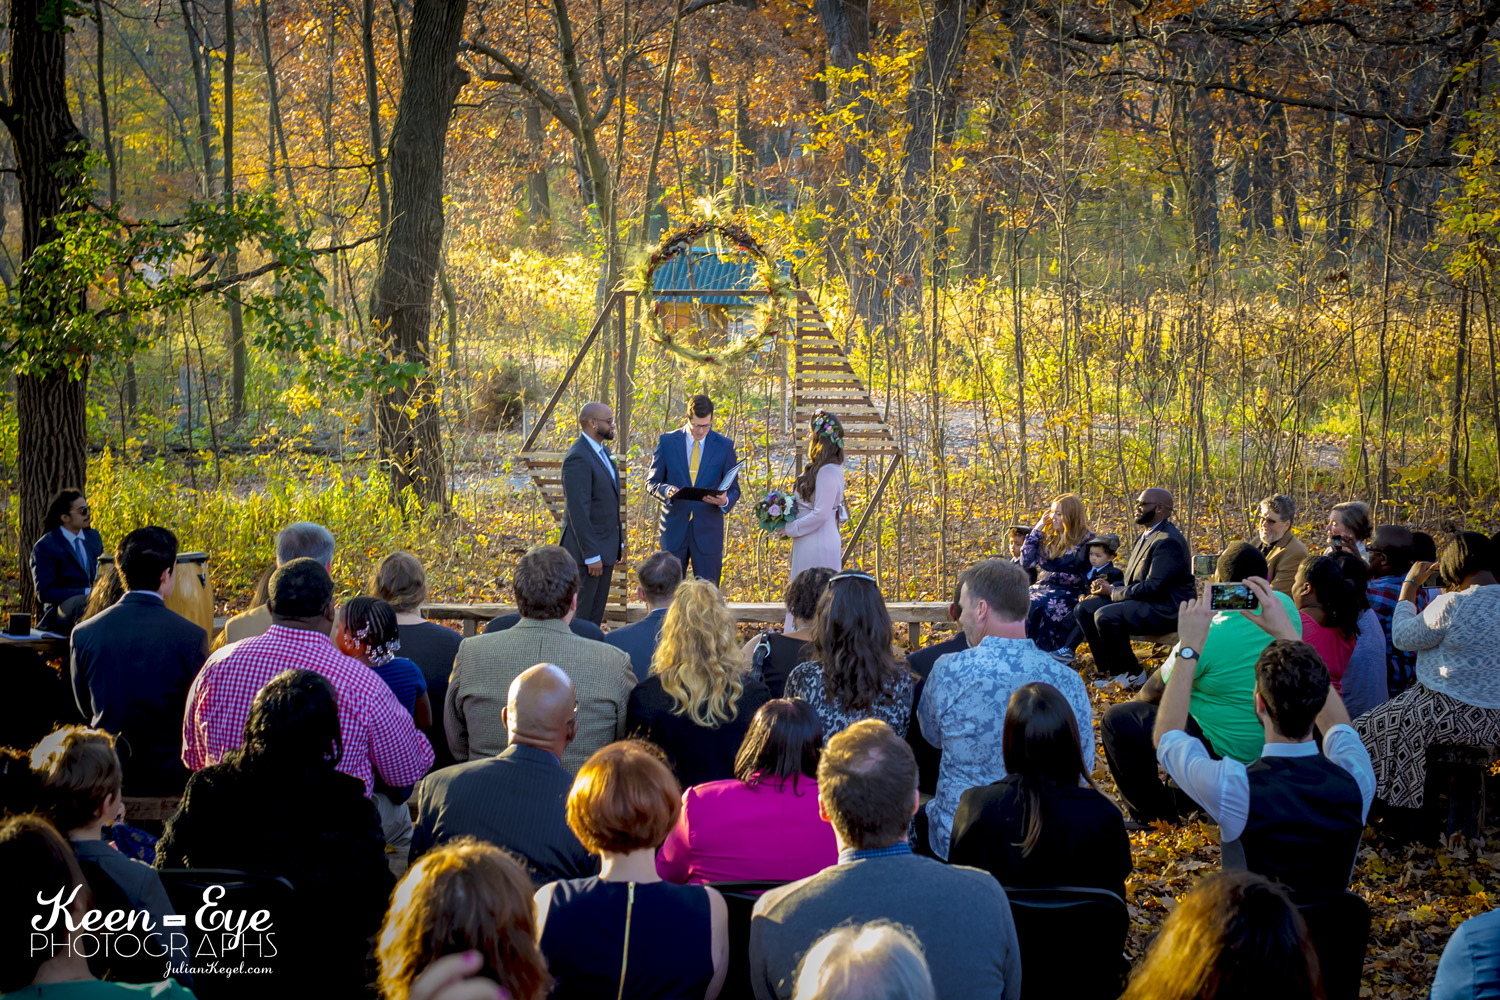 Oscar & Clare celebrate their union in the old-growth woods surrounding the Urban Ecology Center in Milwaukee, WI